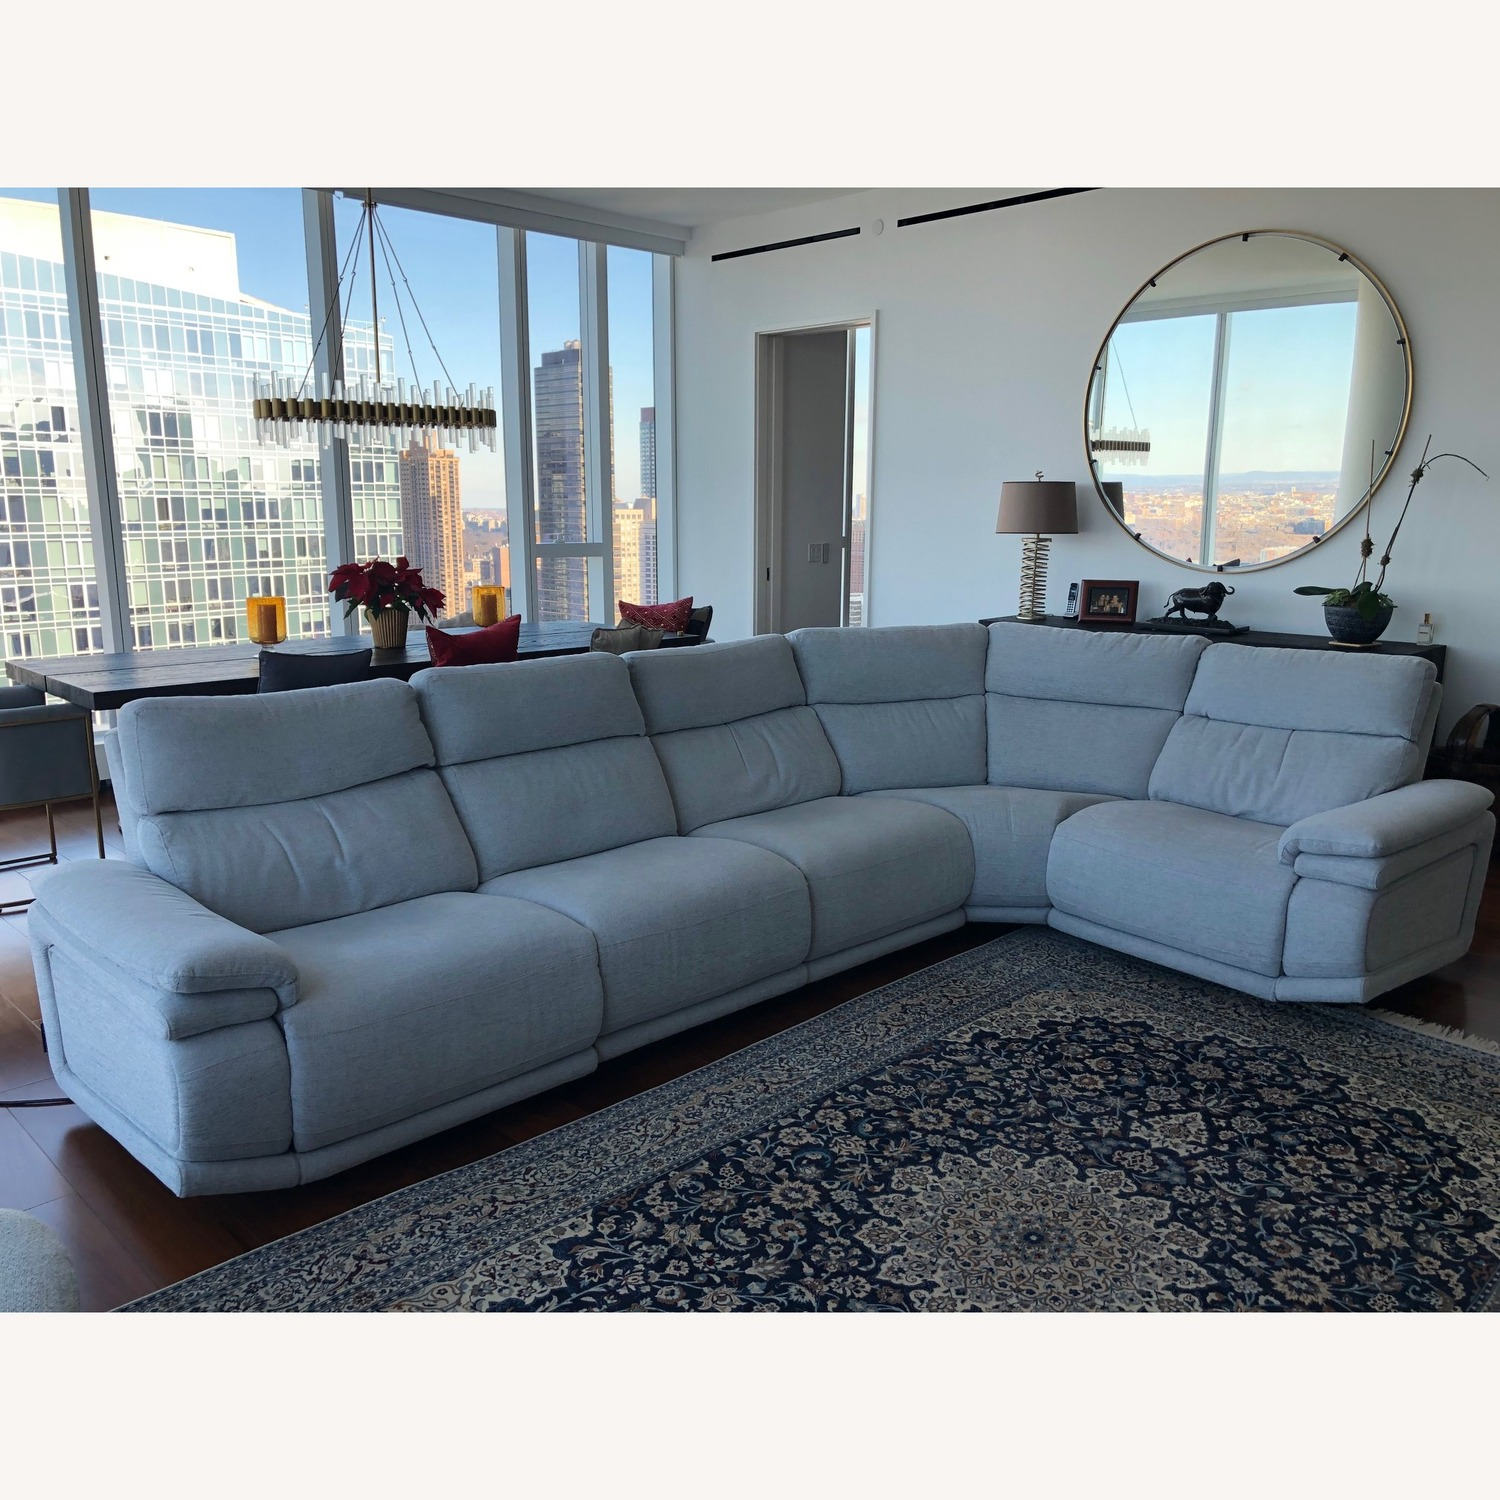 Bloomingdales Furniture Clearance Center: Chateaux D'Ax Astro Motion 5-Piece Sectional